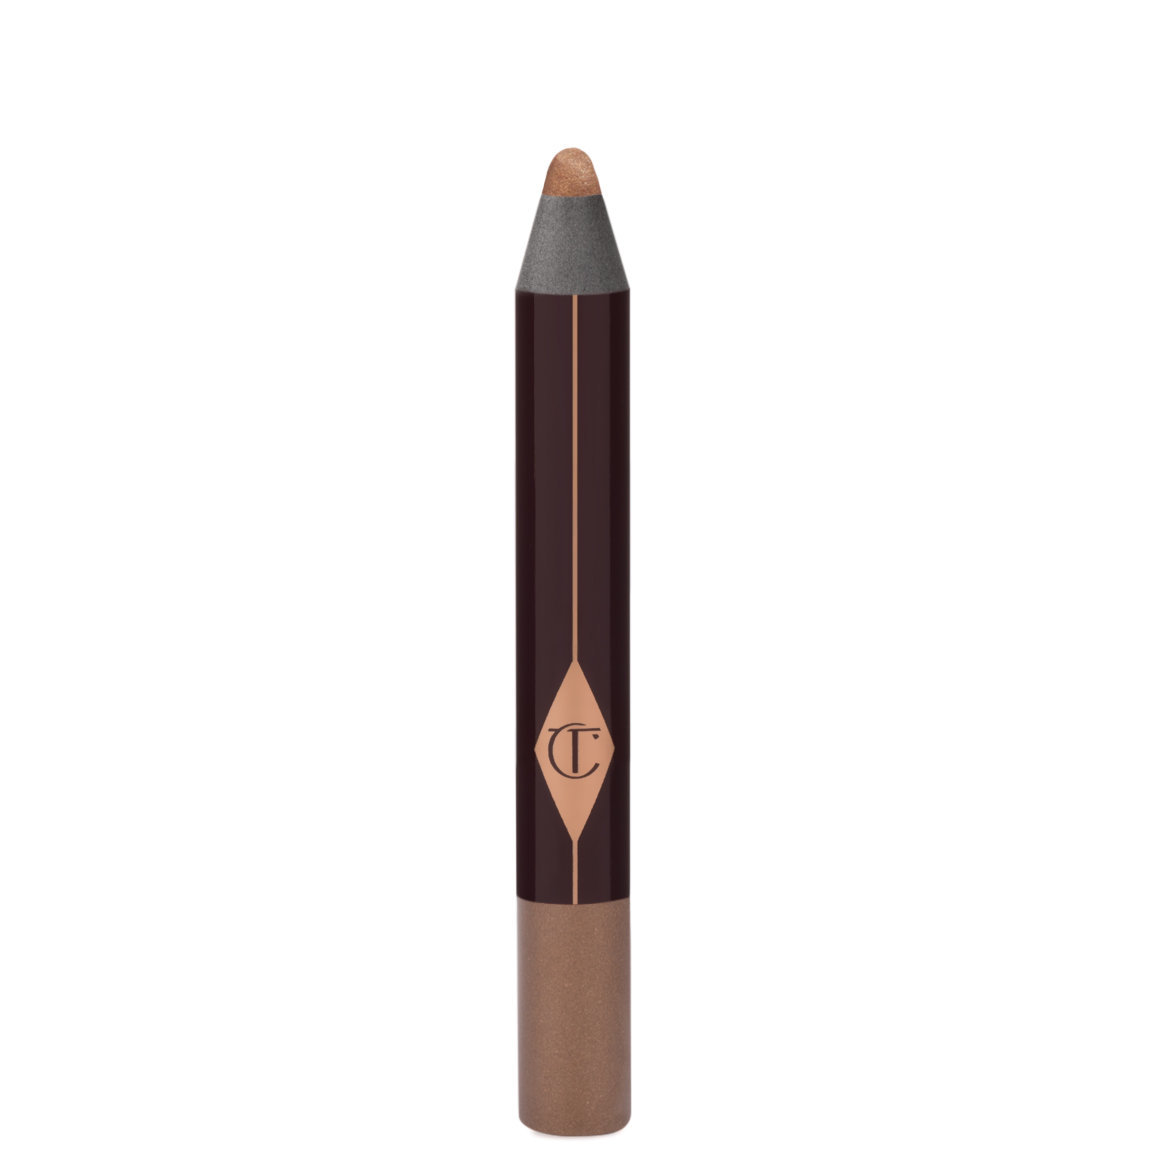 Charlotte Tilbury Colour Chameleon Amber Haze alternative view 1.